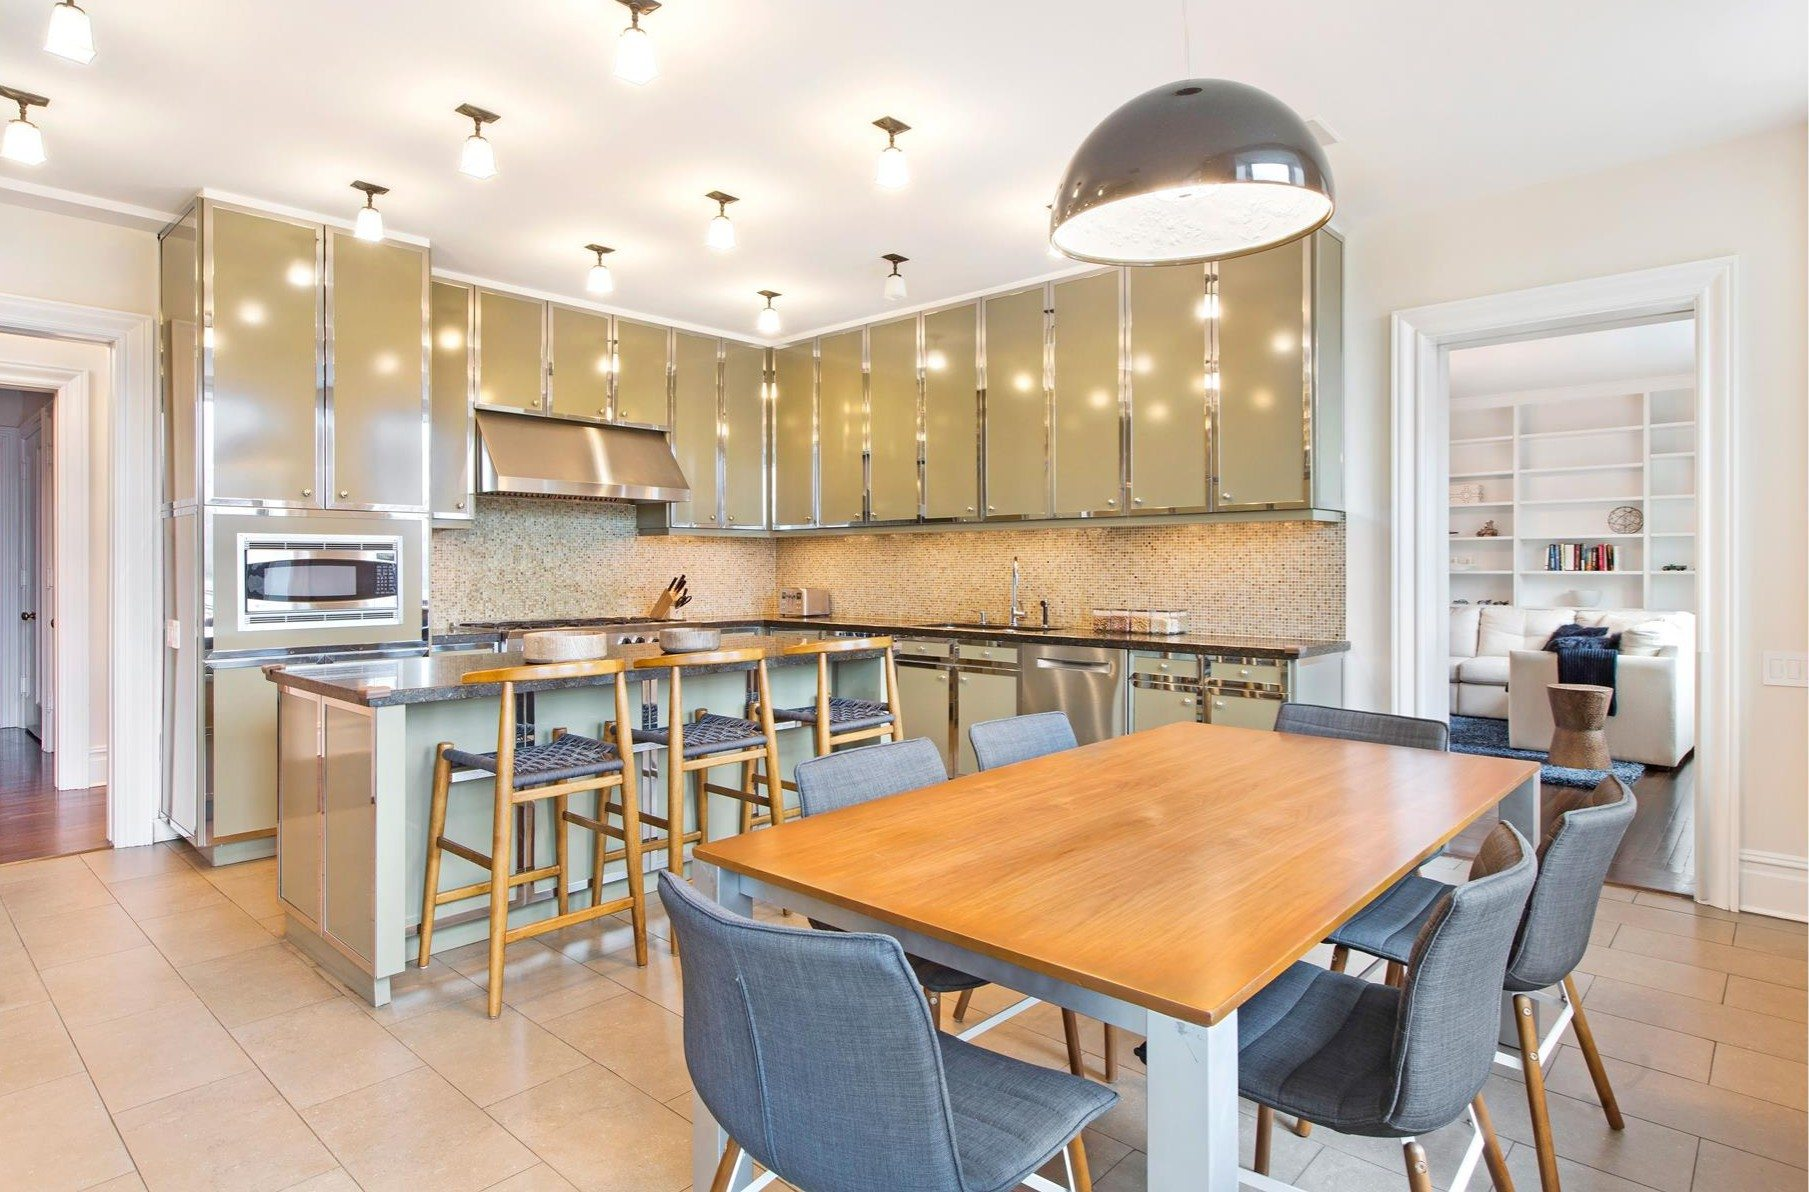 The Eat In Kitchen Has Two Refrigerators, A Six Burner Viking Stove, Custom  Cabinets With Chrome Accents, And Honed Granite Counters.